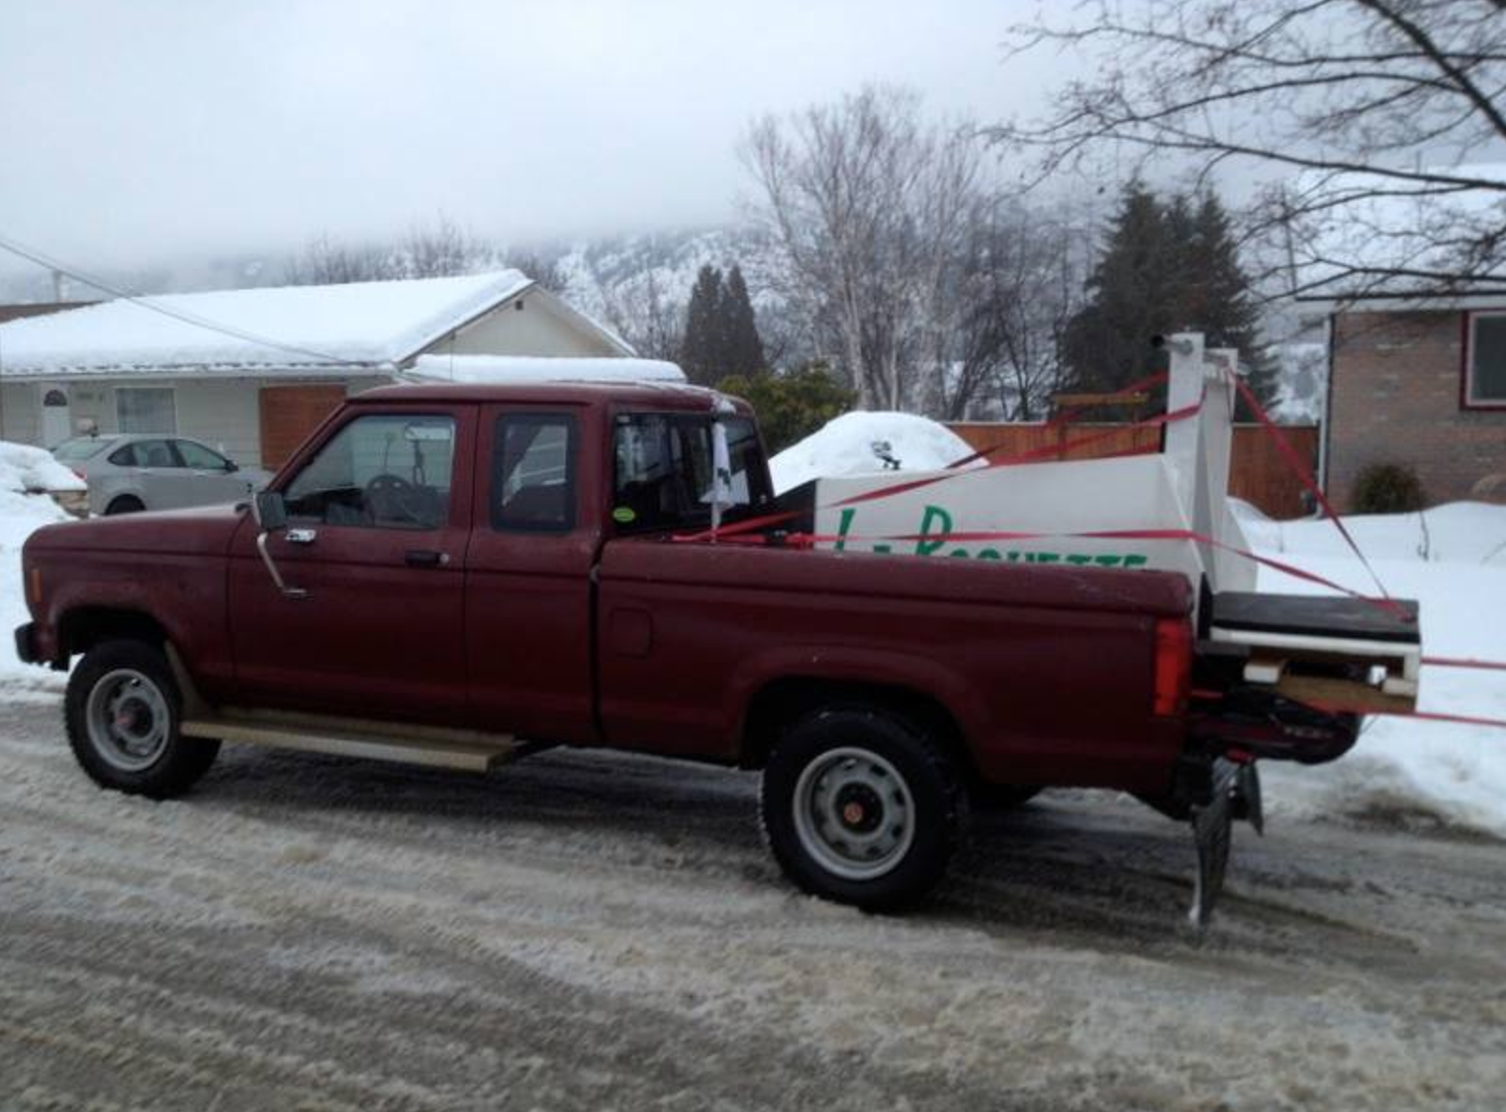 Hauling La Roquette to the bobsled races in Rossland.